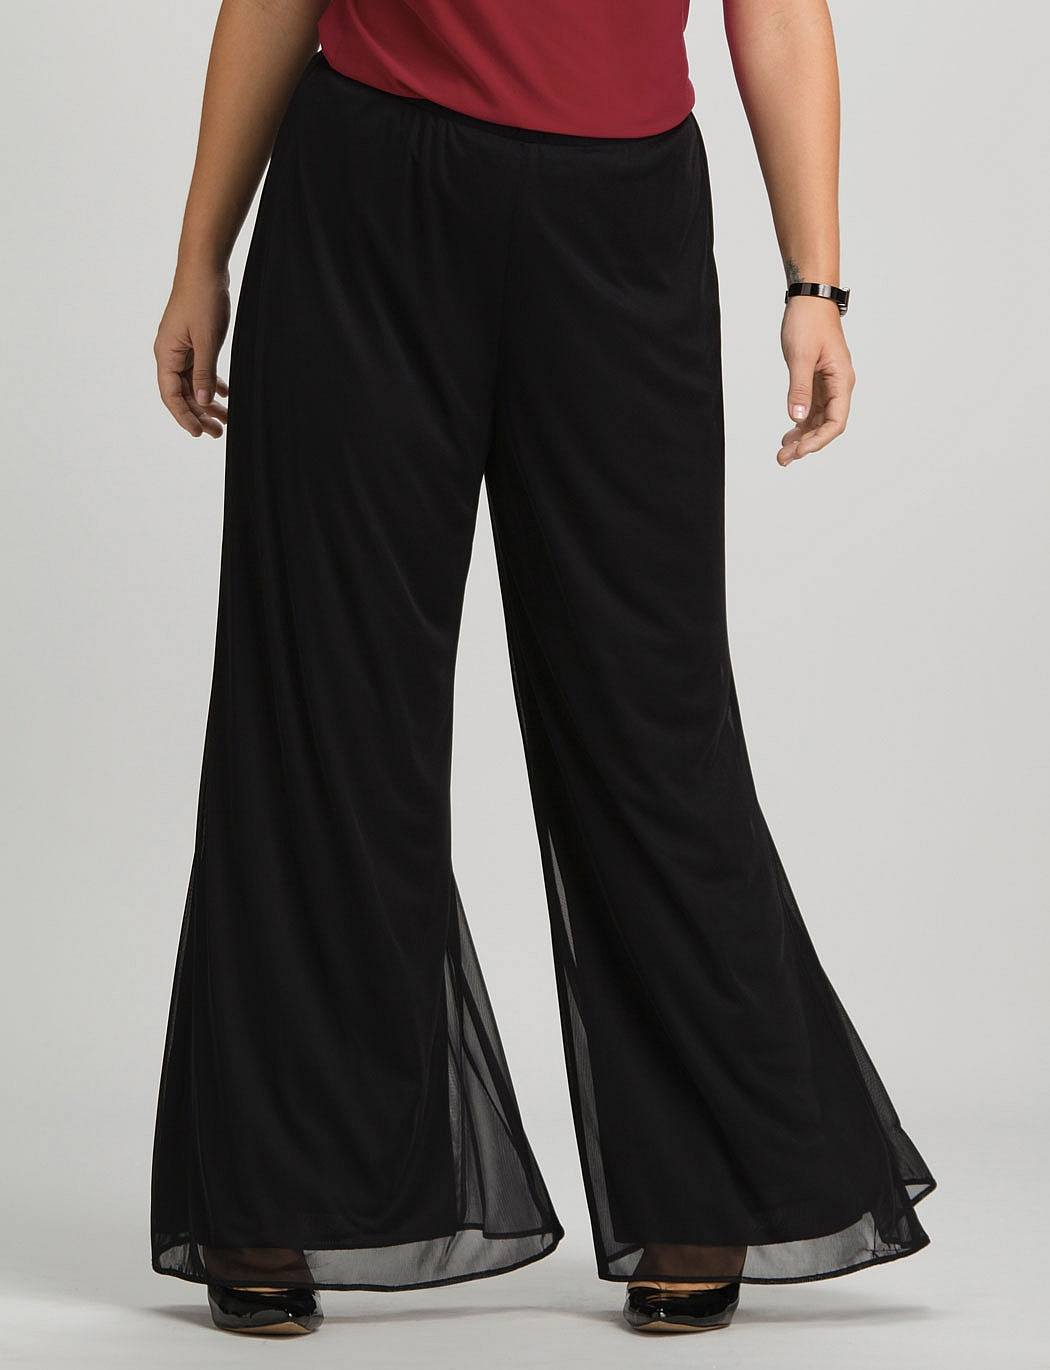 28 awesome womens palazzo pants suit � playzoacom